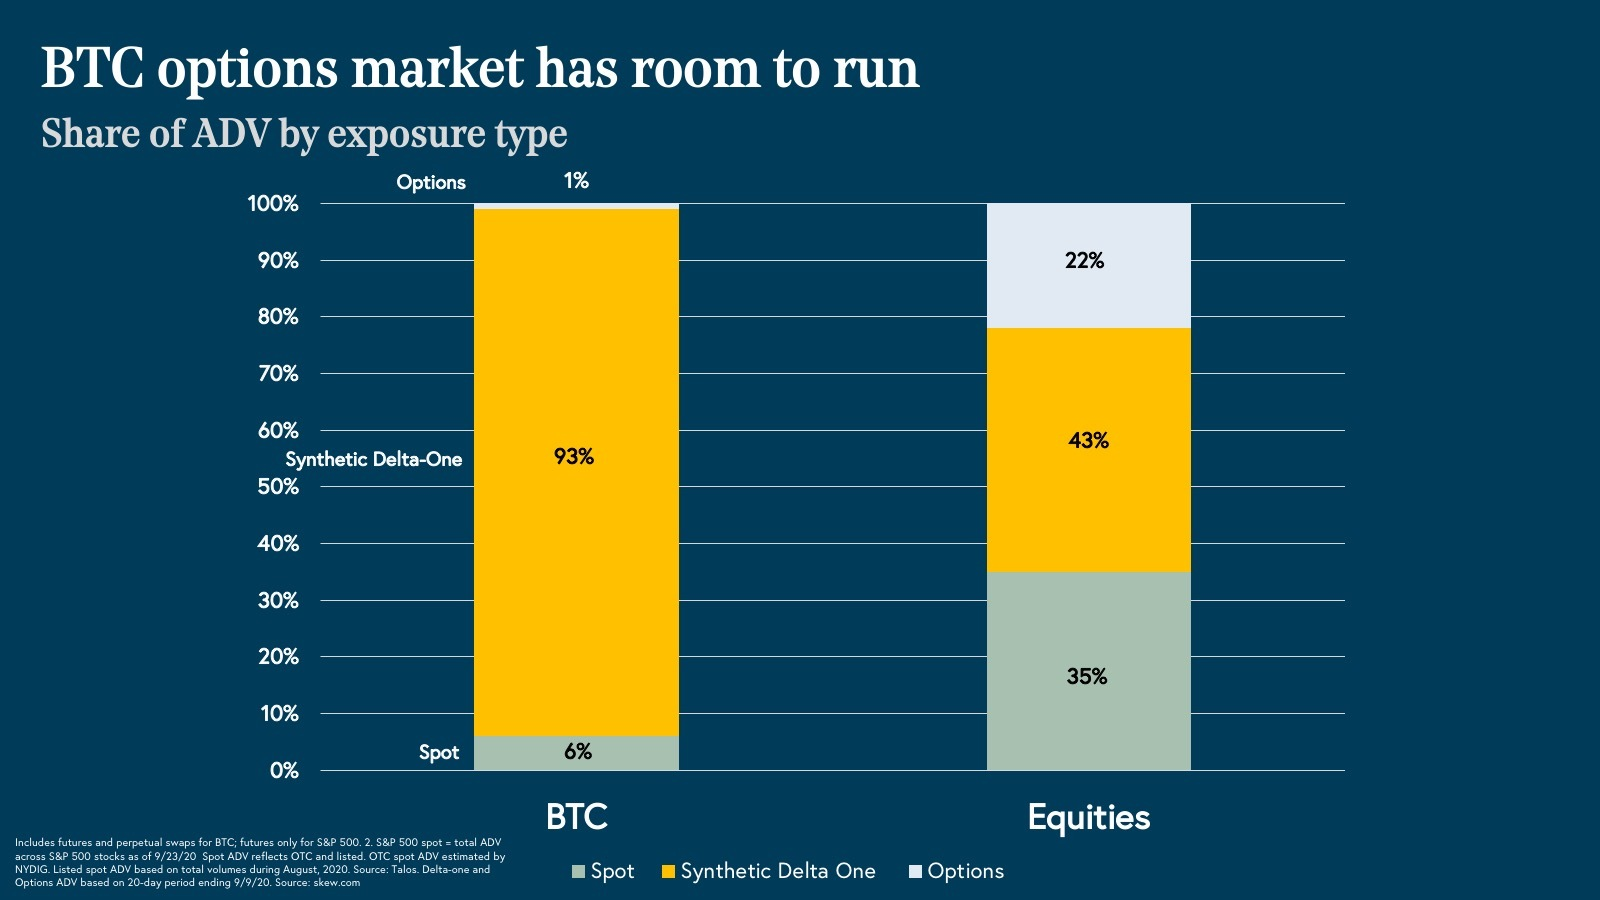 BTC options market has room to run bar graph